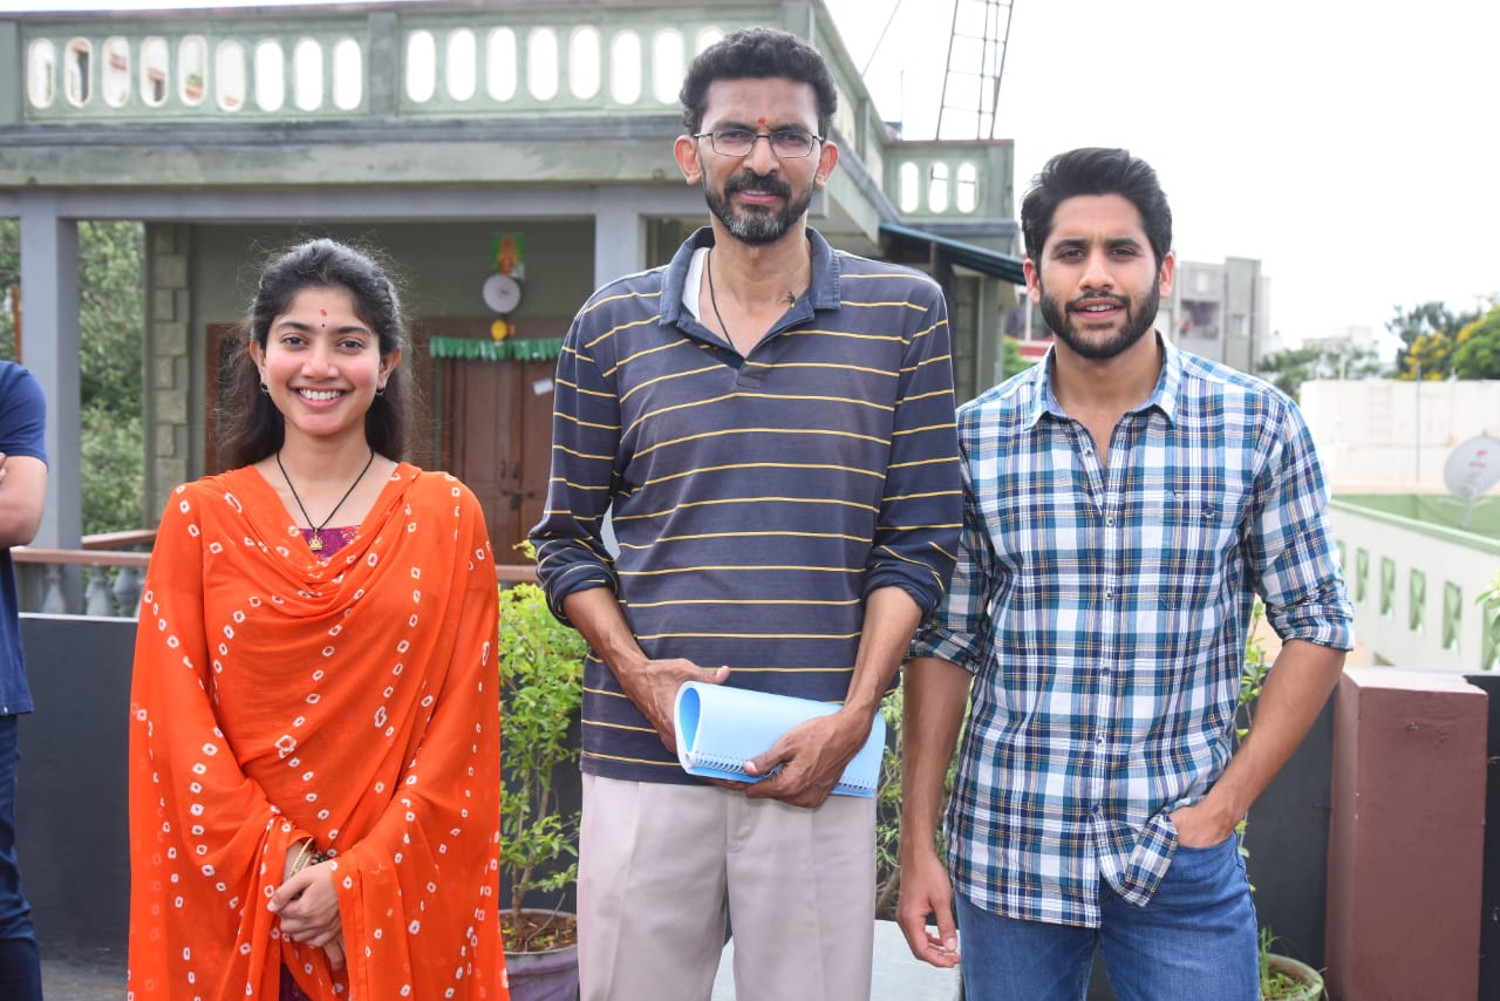 Sai Pallavi Naga Chaitanya Sekhar Kammula Movie Shooting started